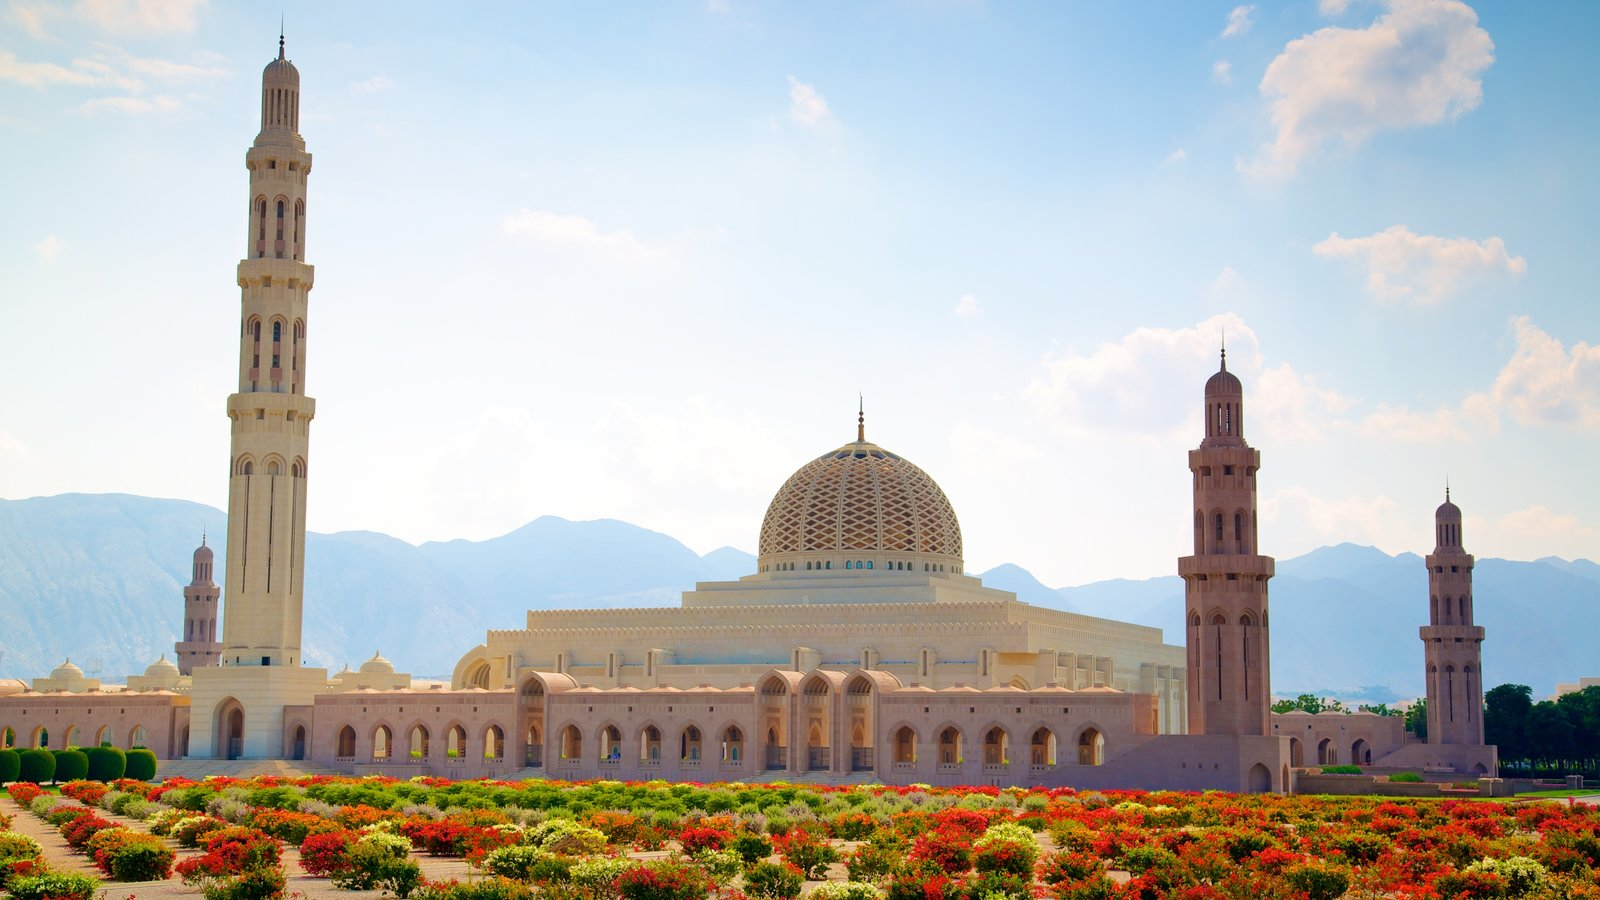 Muscat showing a garden, a mosque and heritage architecture